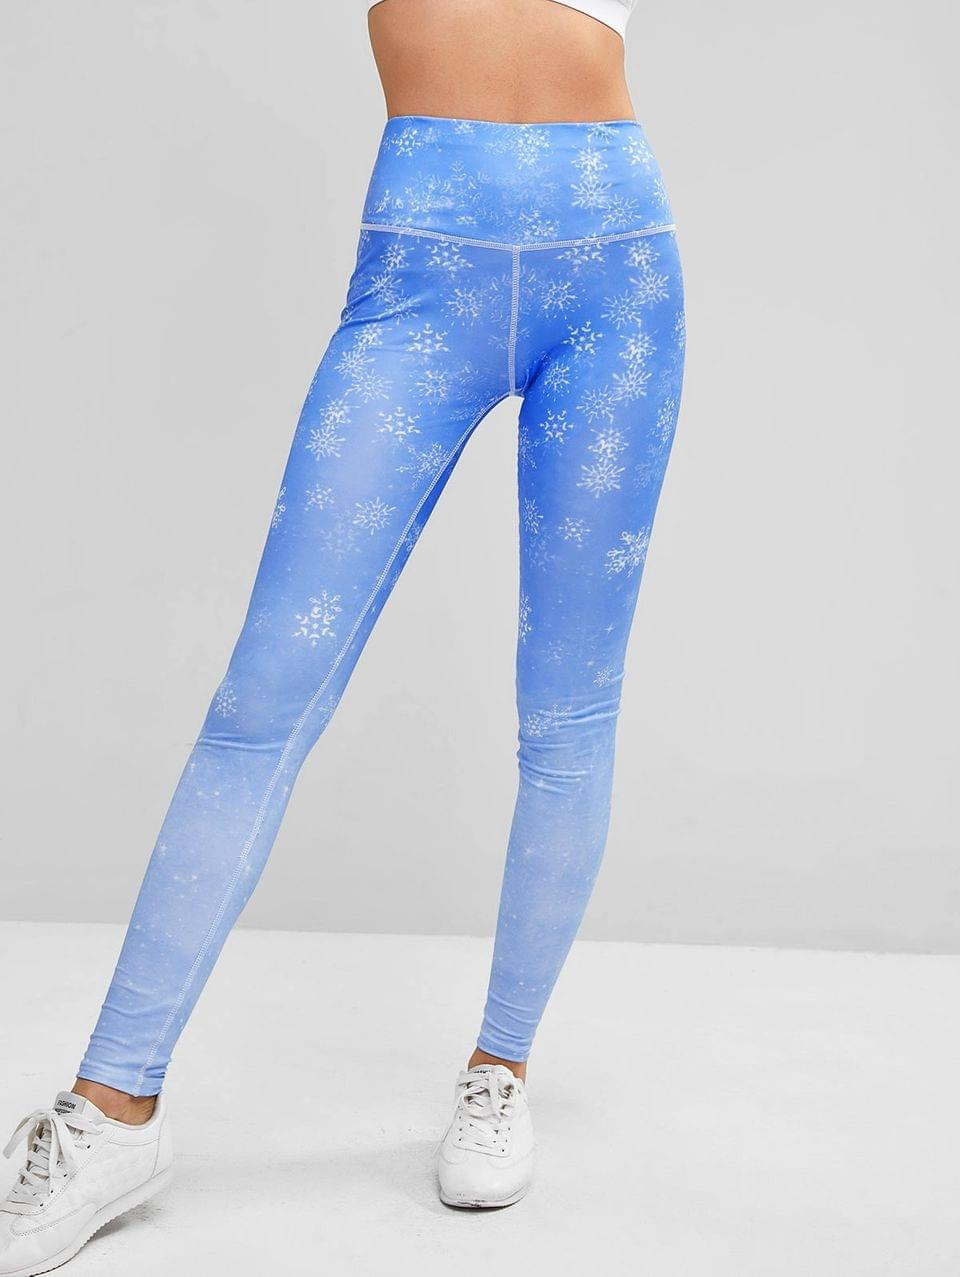 Women's Snowflake Print Wide Waistband Topstitched Gym Leggings - Dodger Blue M